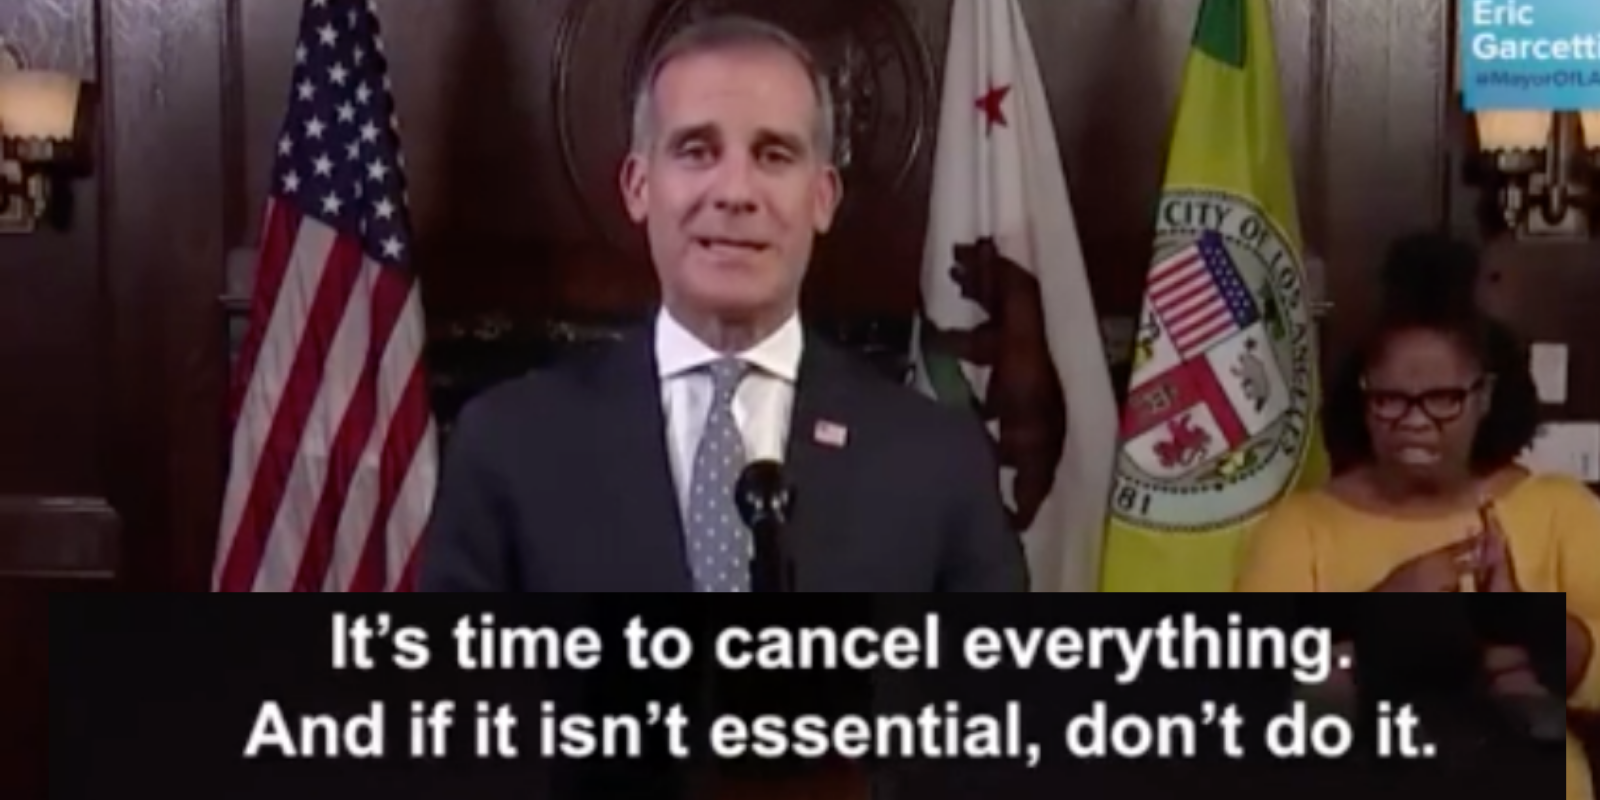 A comprehensive list of what you can and can't do in Garcetti's 'cancelled' LA